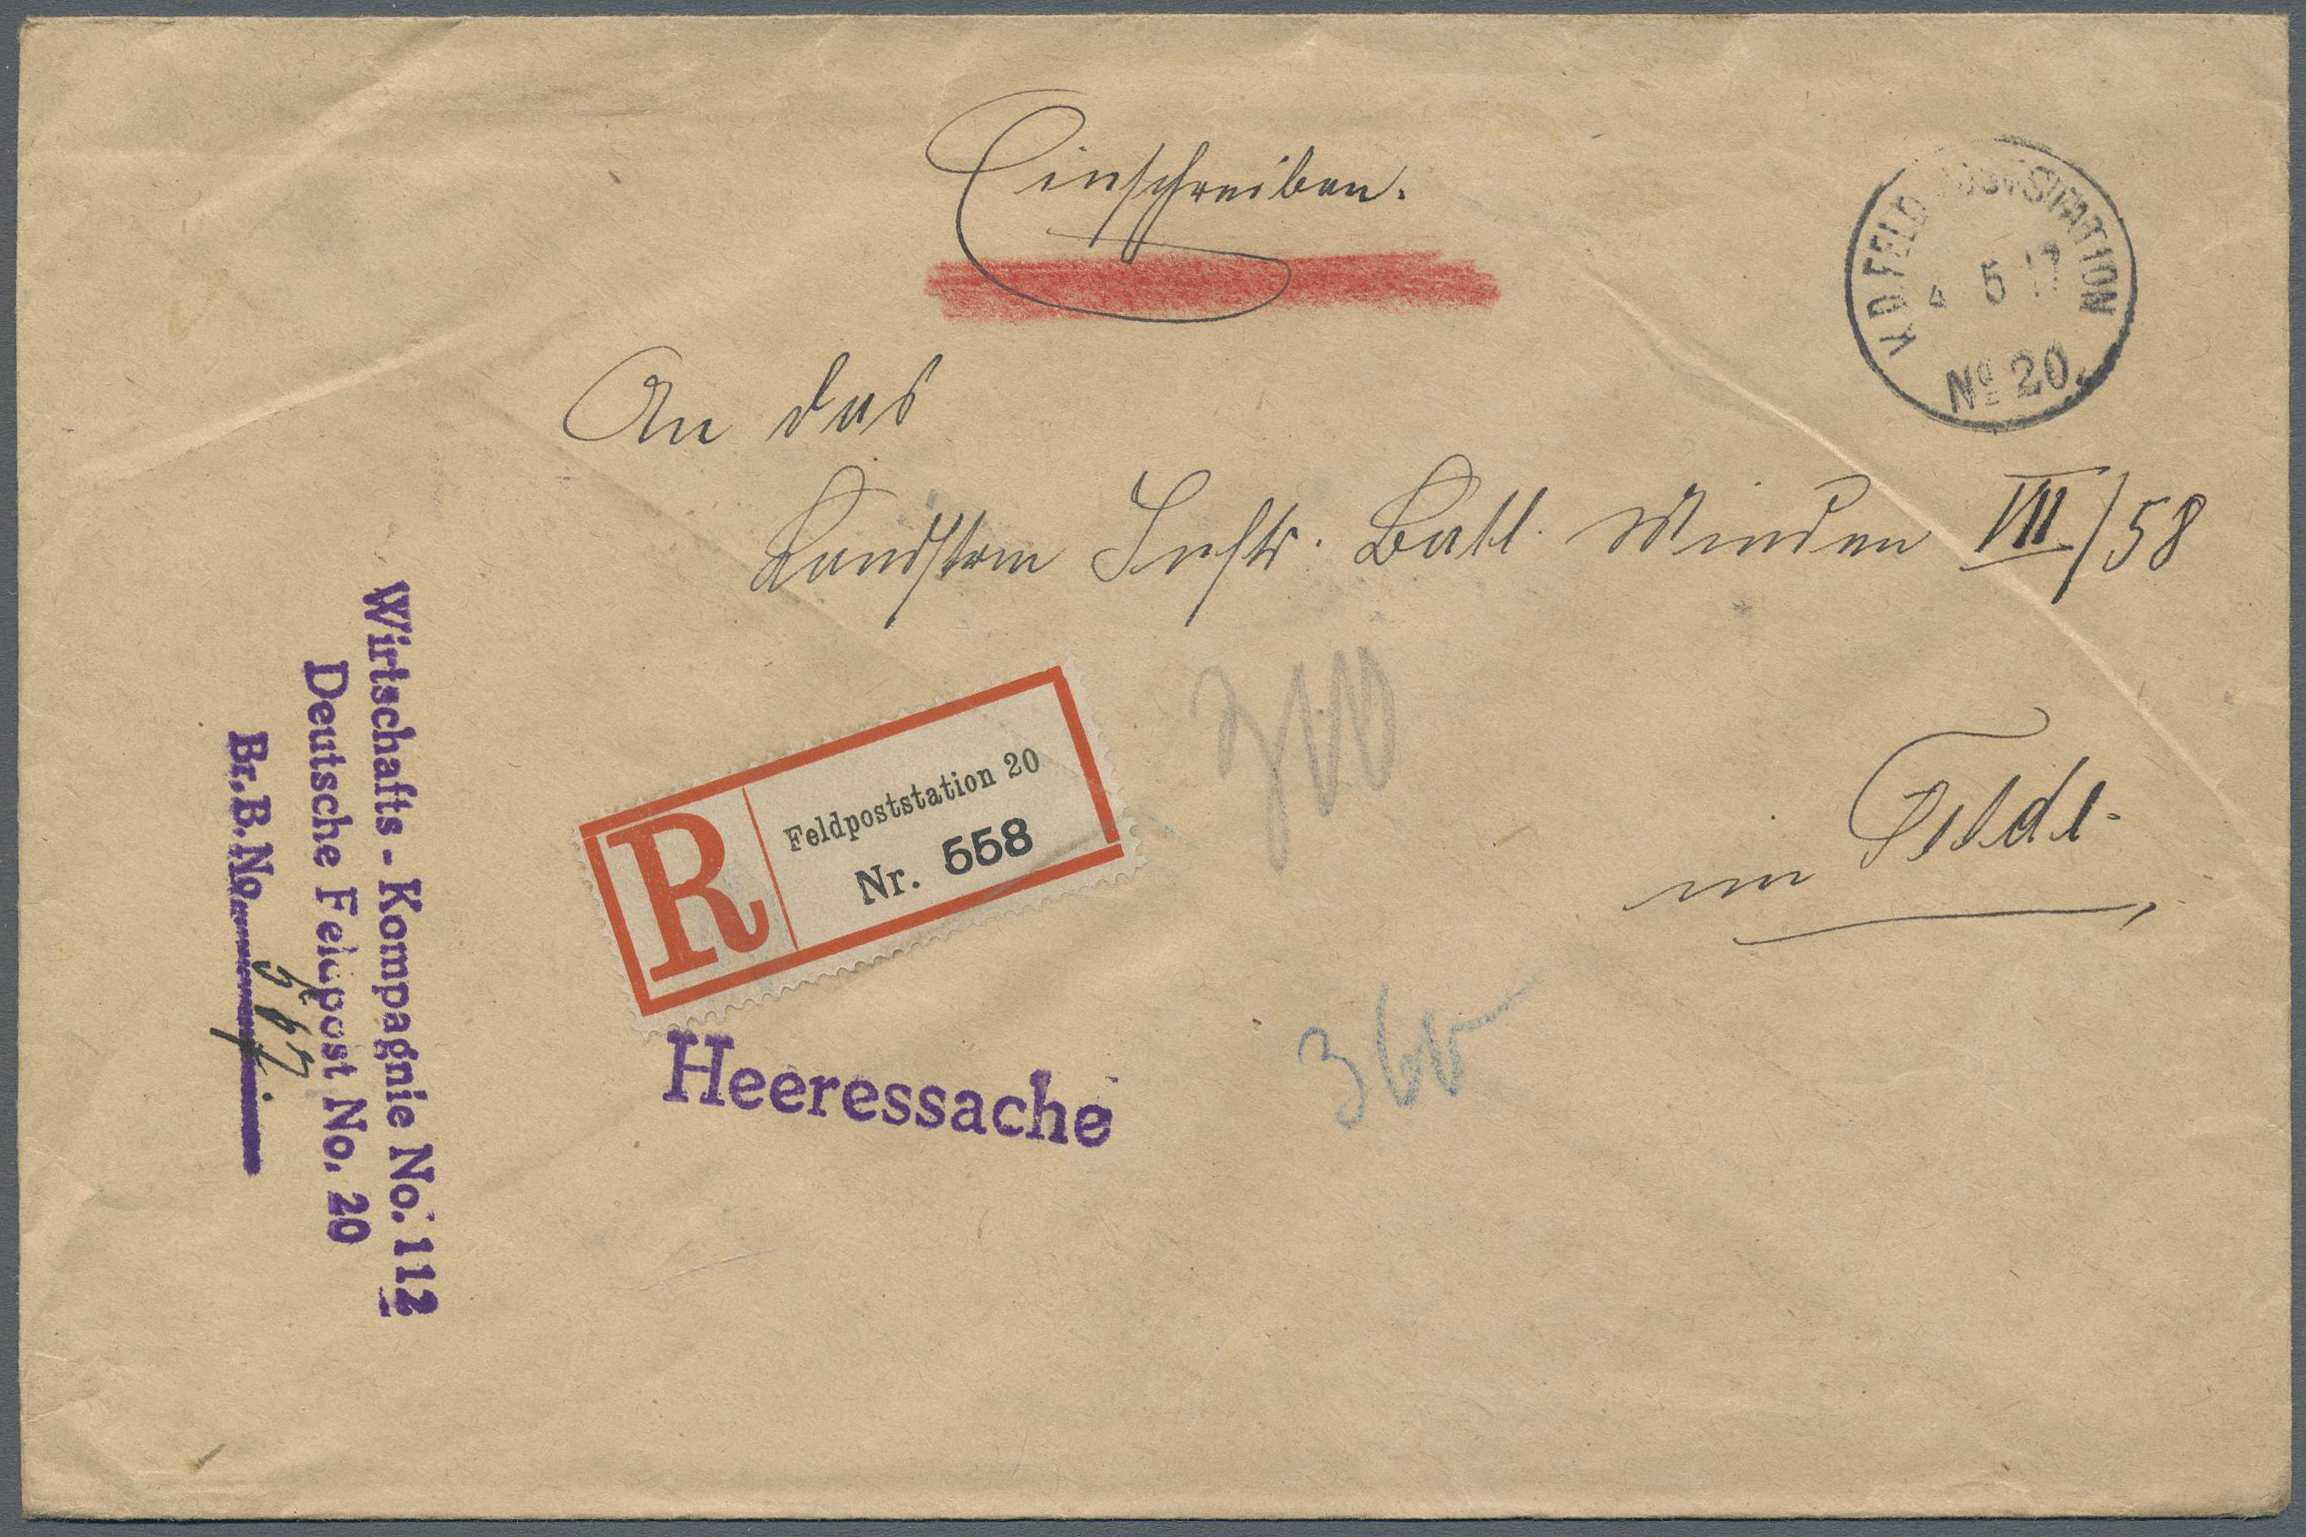 Lot 37419 - feldpost 1. weltkrieg  -  Auktionshaus Christoph Gärtner GmbH & Co. KG Collections Germany,  Collections Supplement, Surprise boxes #39 Day 7